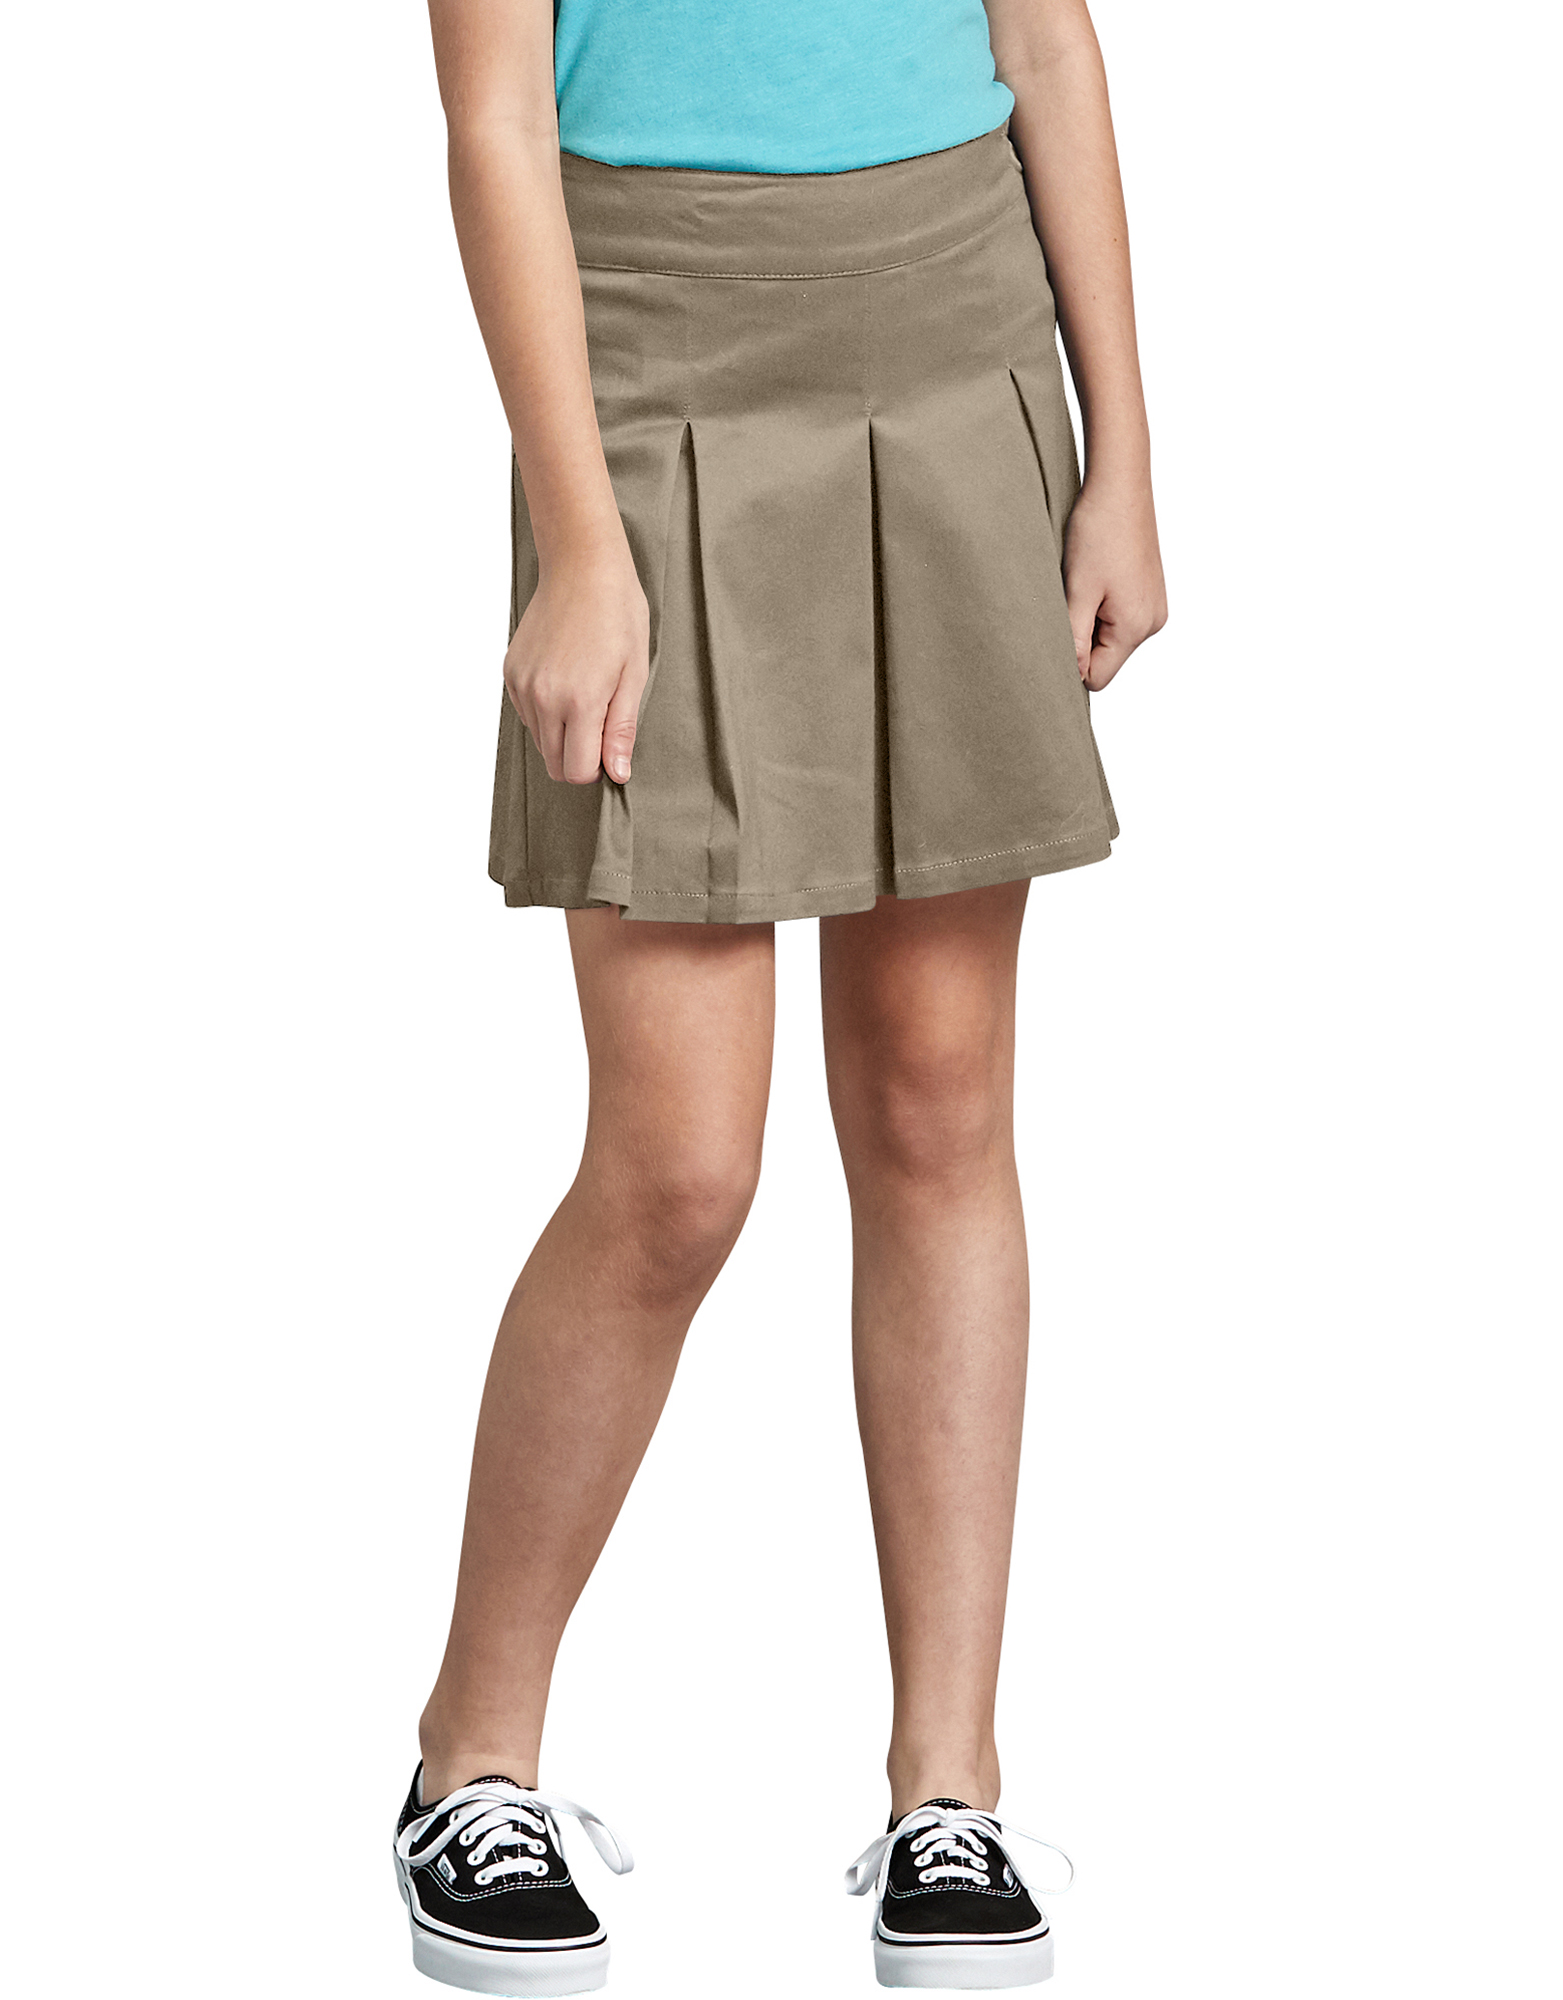 Girls' Super Stretch Skort - Desert Khaki (DS)